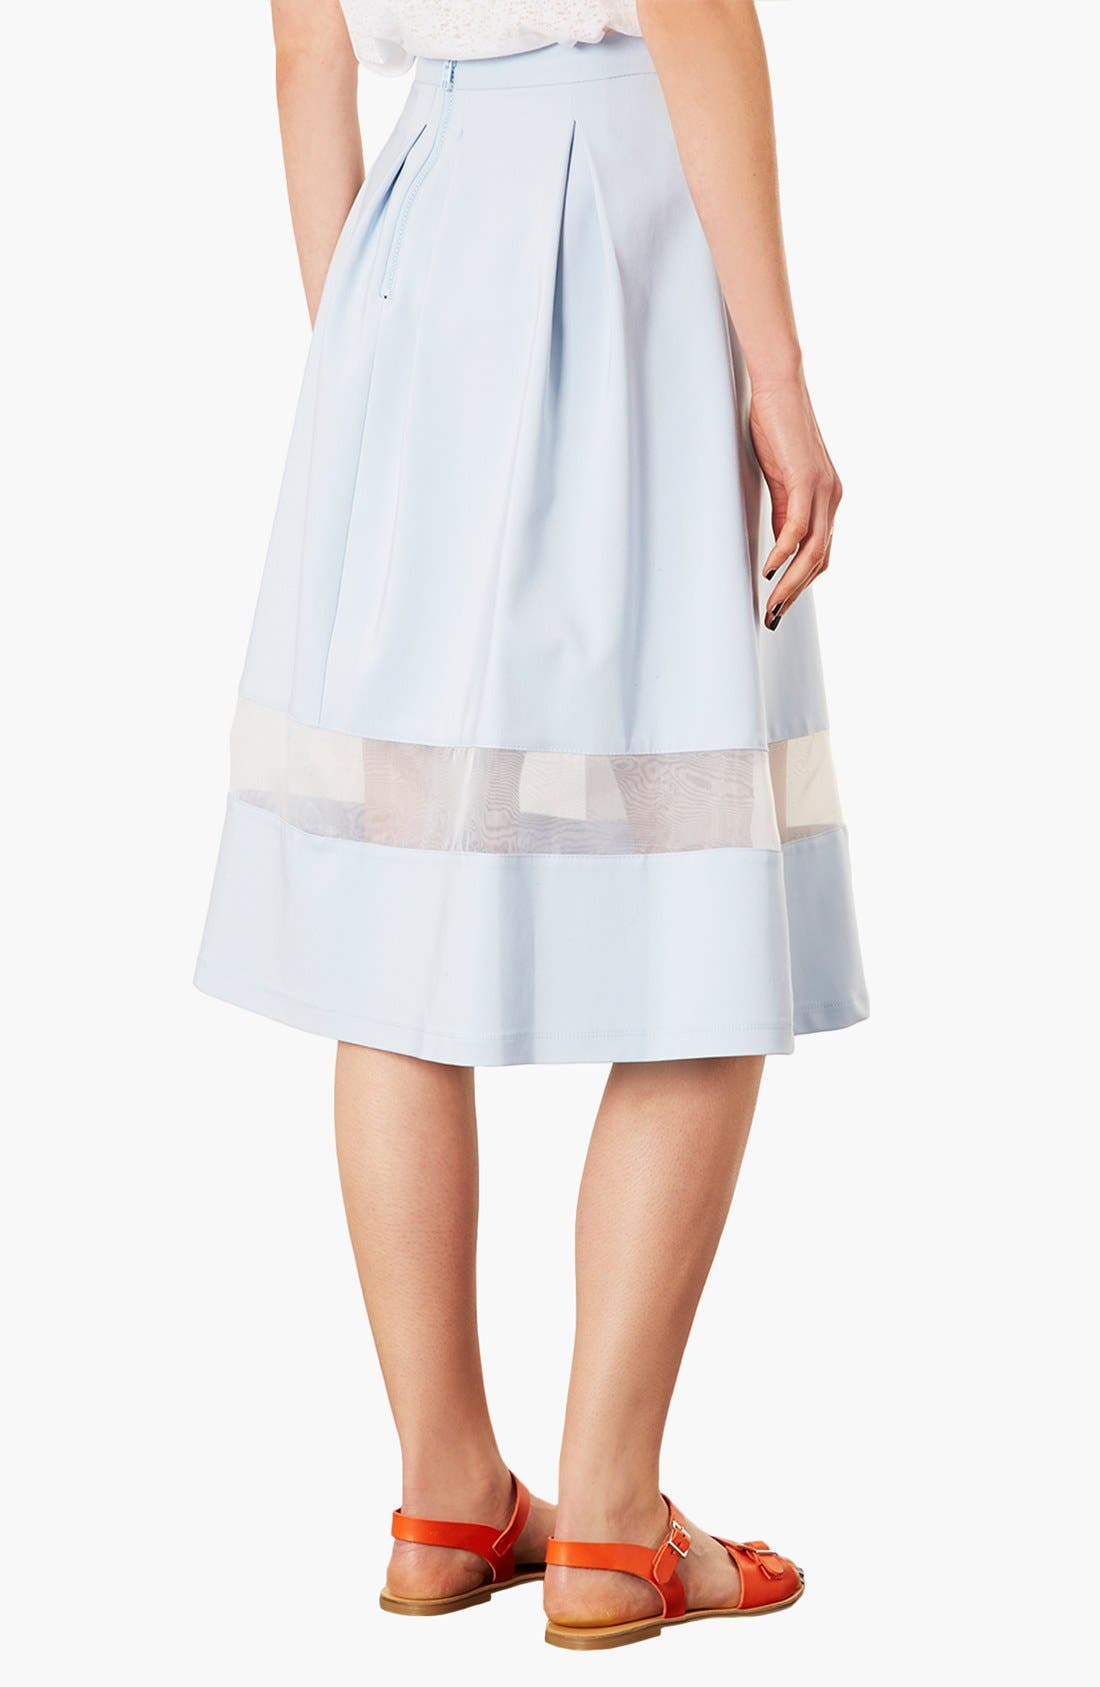 TOPSHOP, Organza Stripe Skirt, Alternate thumbnail 2, color, 450